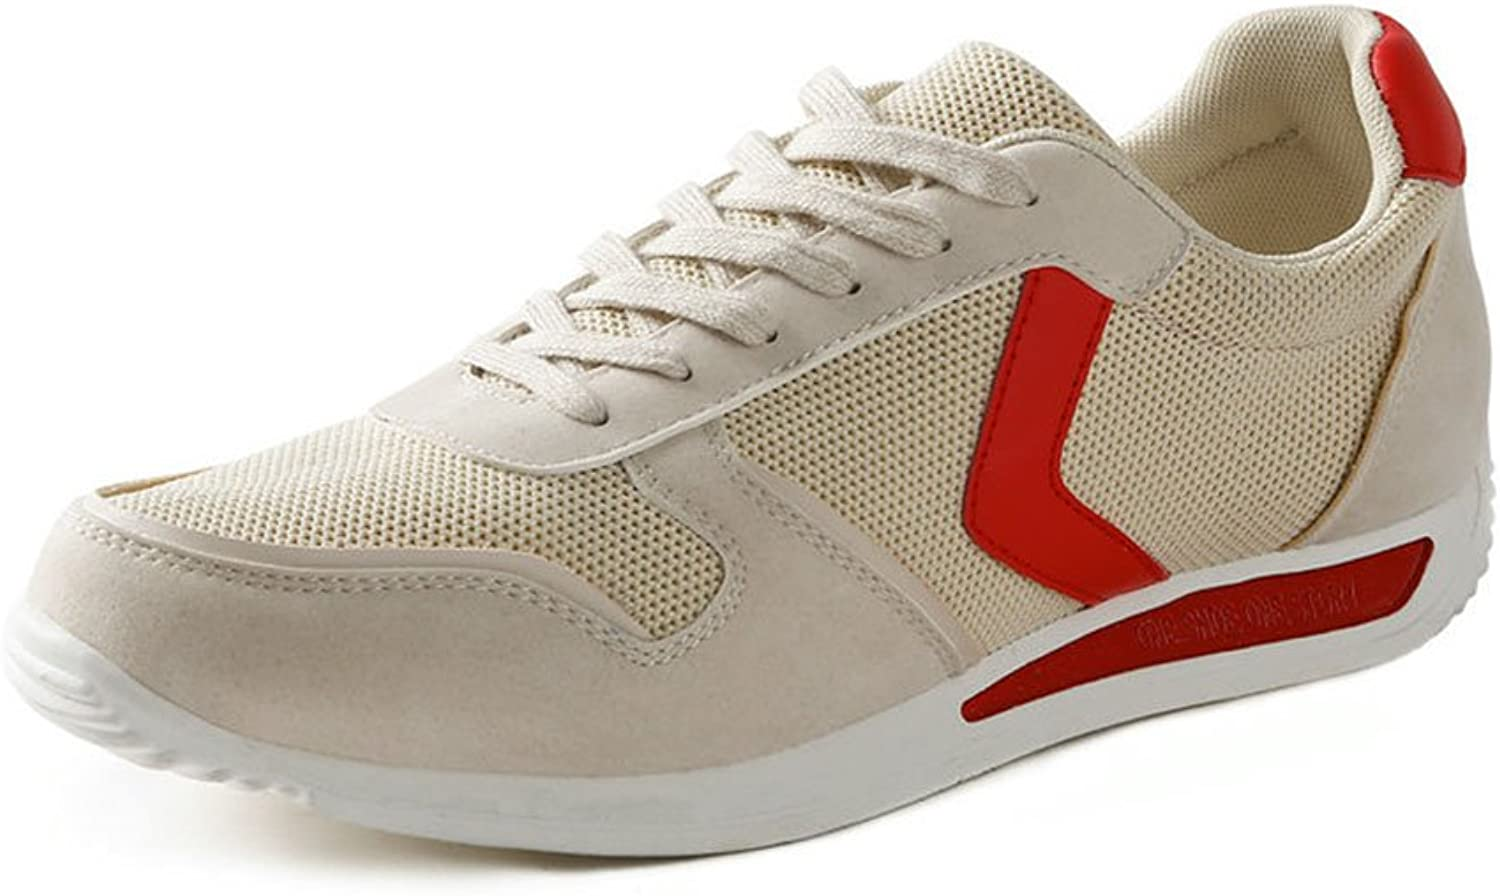 YIXINY 1184511152 Spring And Autumn Comfortable Breathable Casual shoes Men's shoes (color   Beige, Size   EU43 UK9 CN44)